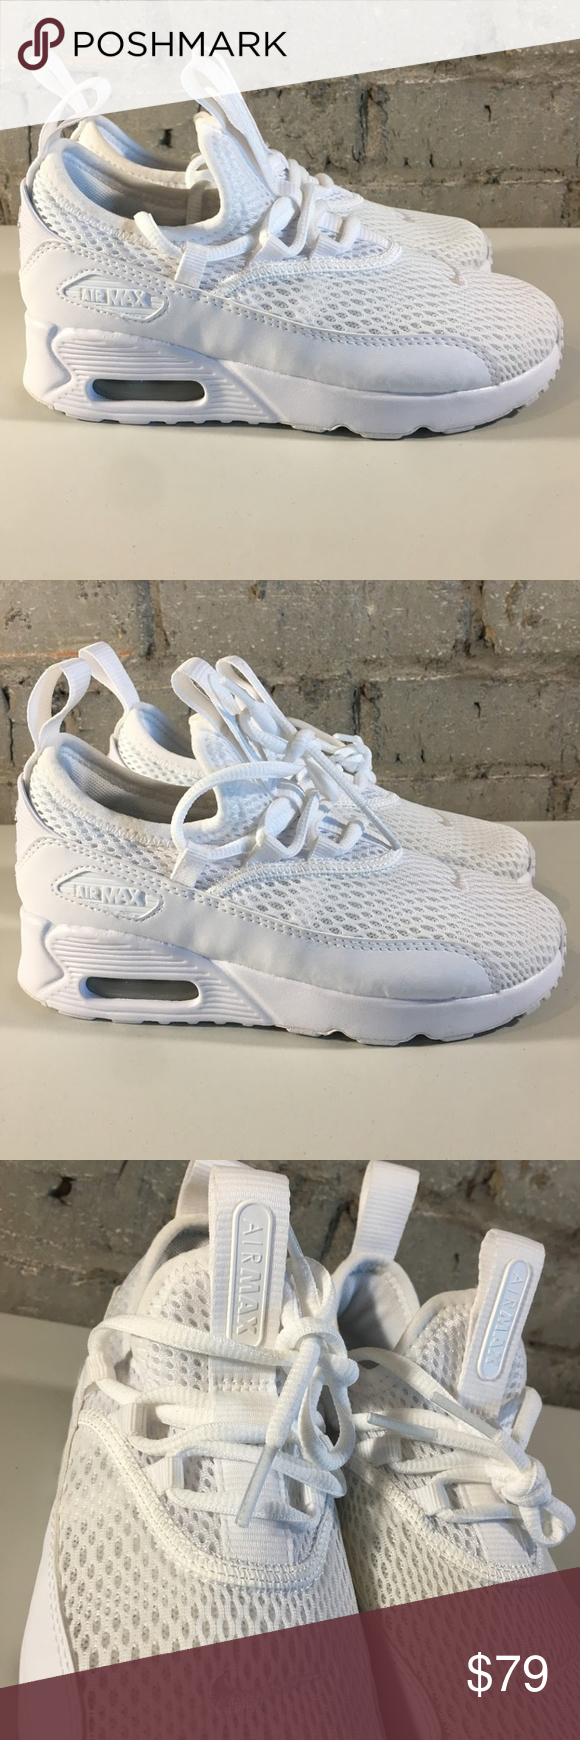 SOLD 🔥 | Nike air max 90, Kids shoes